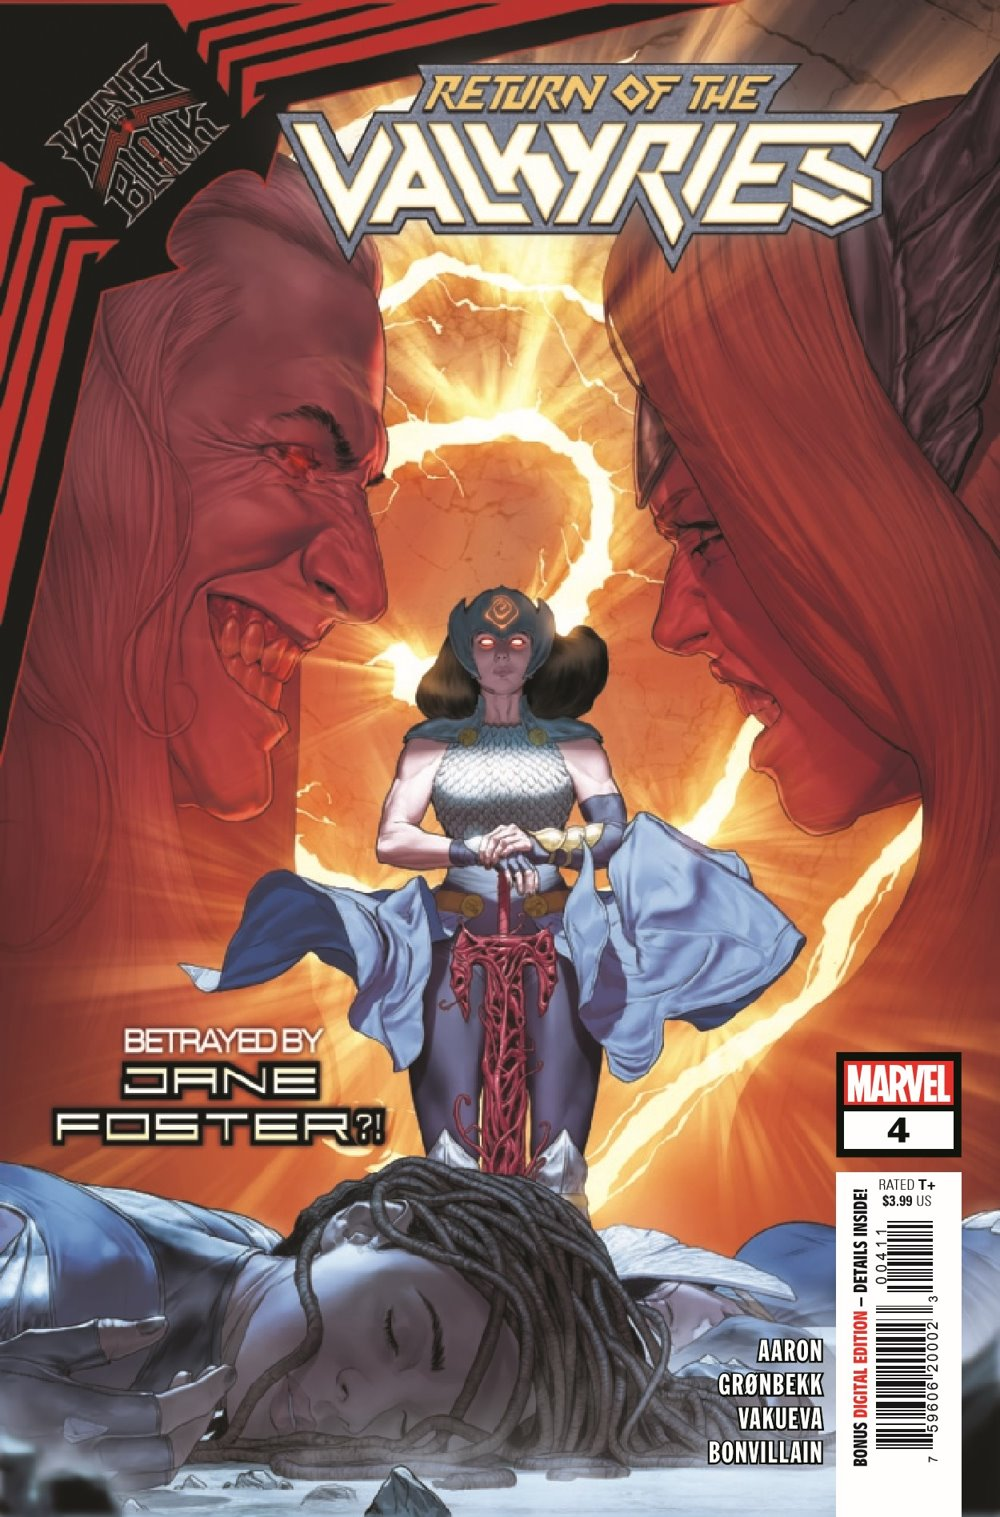 KIBVALKYRIESRET2021004_Preview-1 ComicList Previews: KING IN BLACK RETURN OF THE VALKYRIES #4 (OF 4)